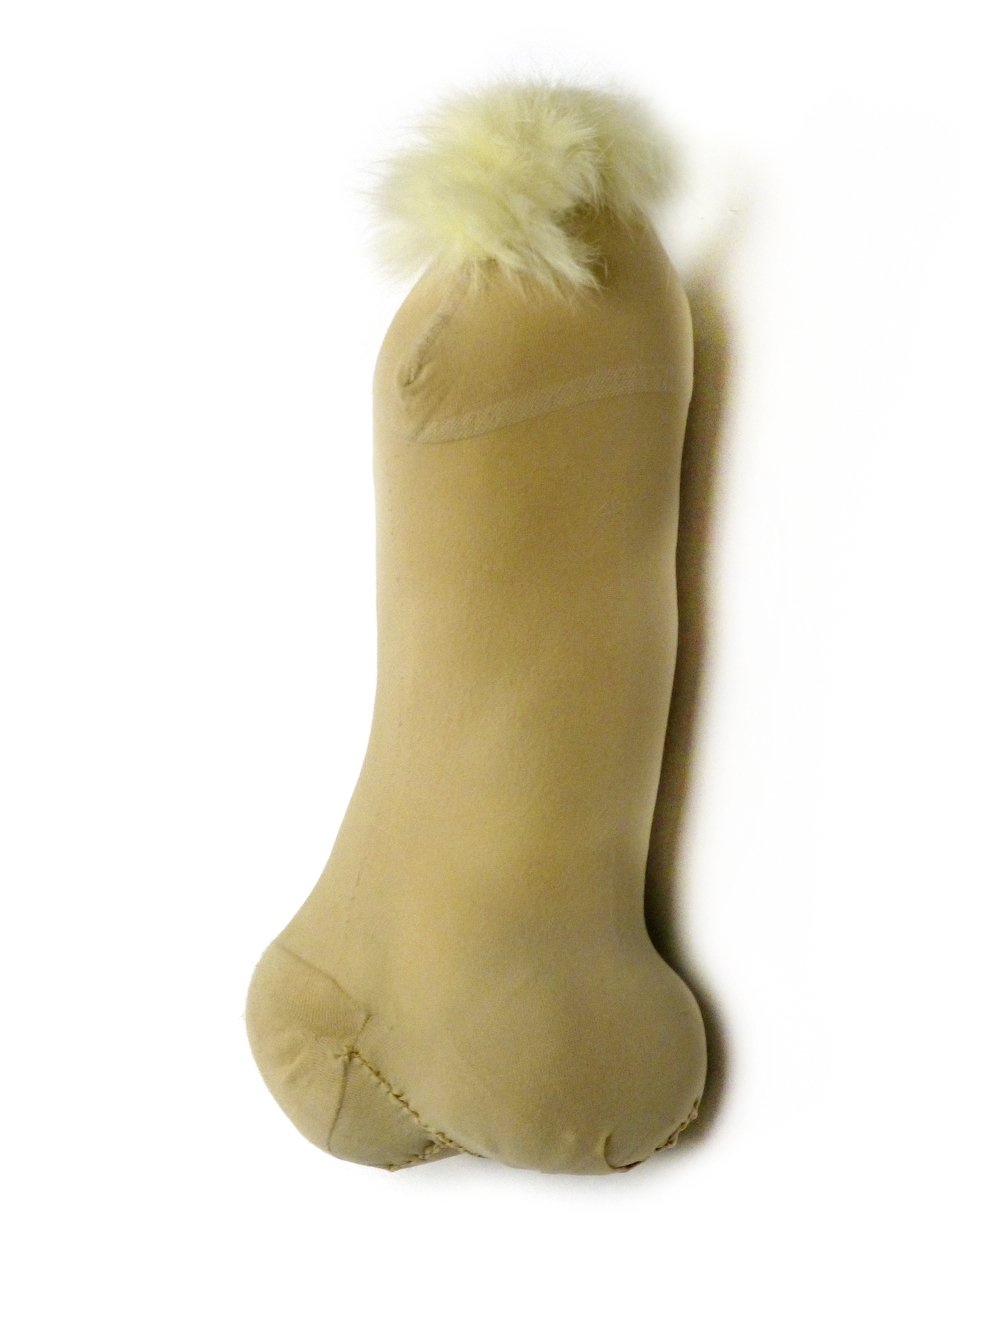 Nr.5, Nylons, sheep`s wool, rabbit fur, 16x6x6 cm